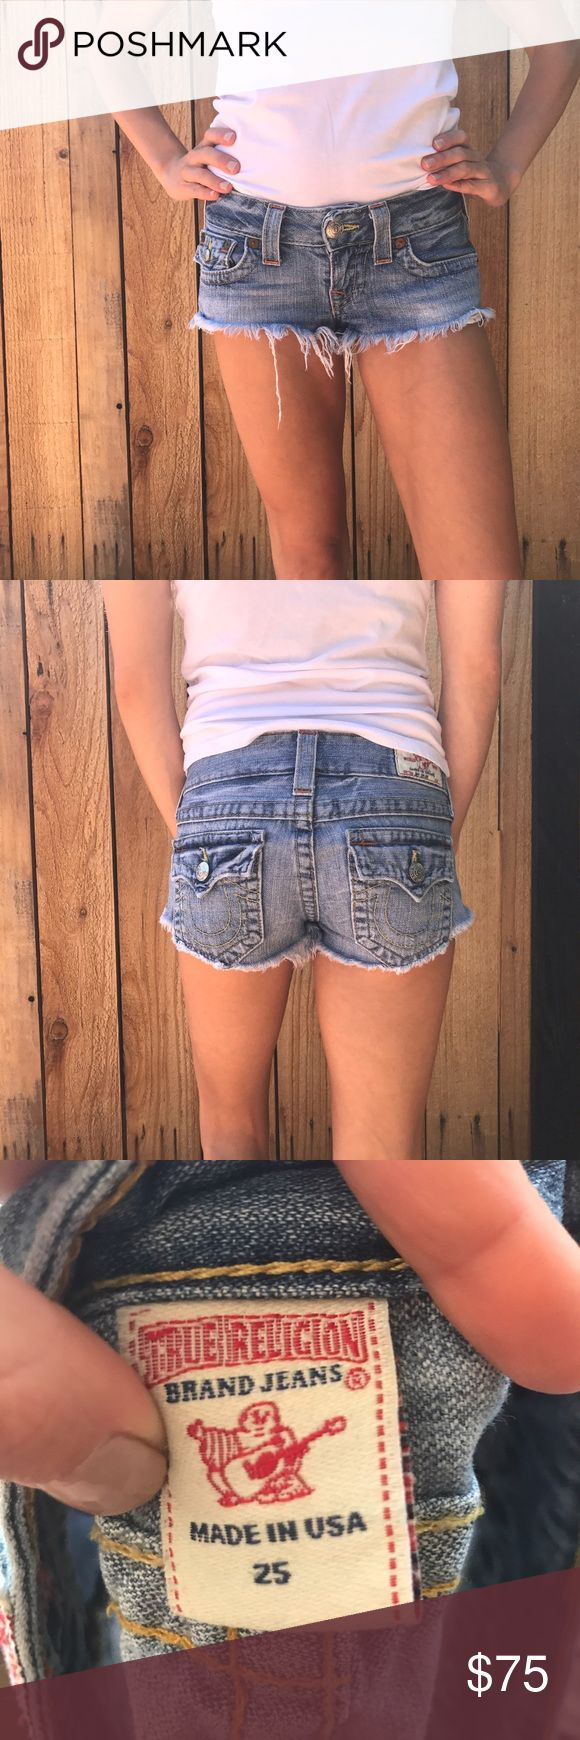 True Religion Denim cut offs🎉30% OFF ANY BUNDLE Excellent condition used true Religion. No flaws at all. Size 25. No trades. Bundle and save  #truereligion #cutoffs #denim #jeanshorts True Religion Shorts Jean Shorts